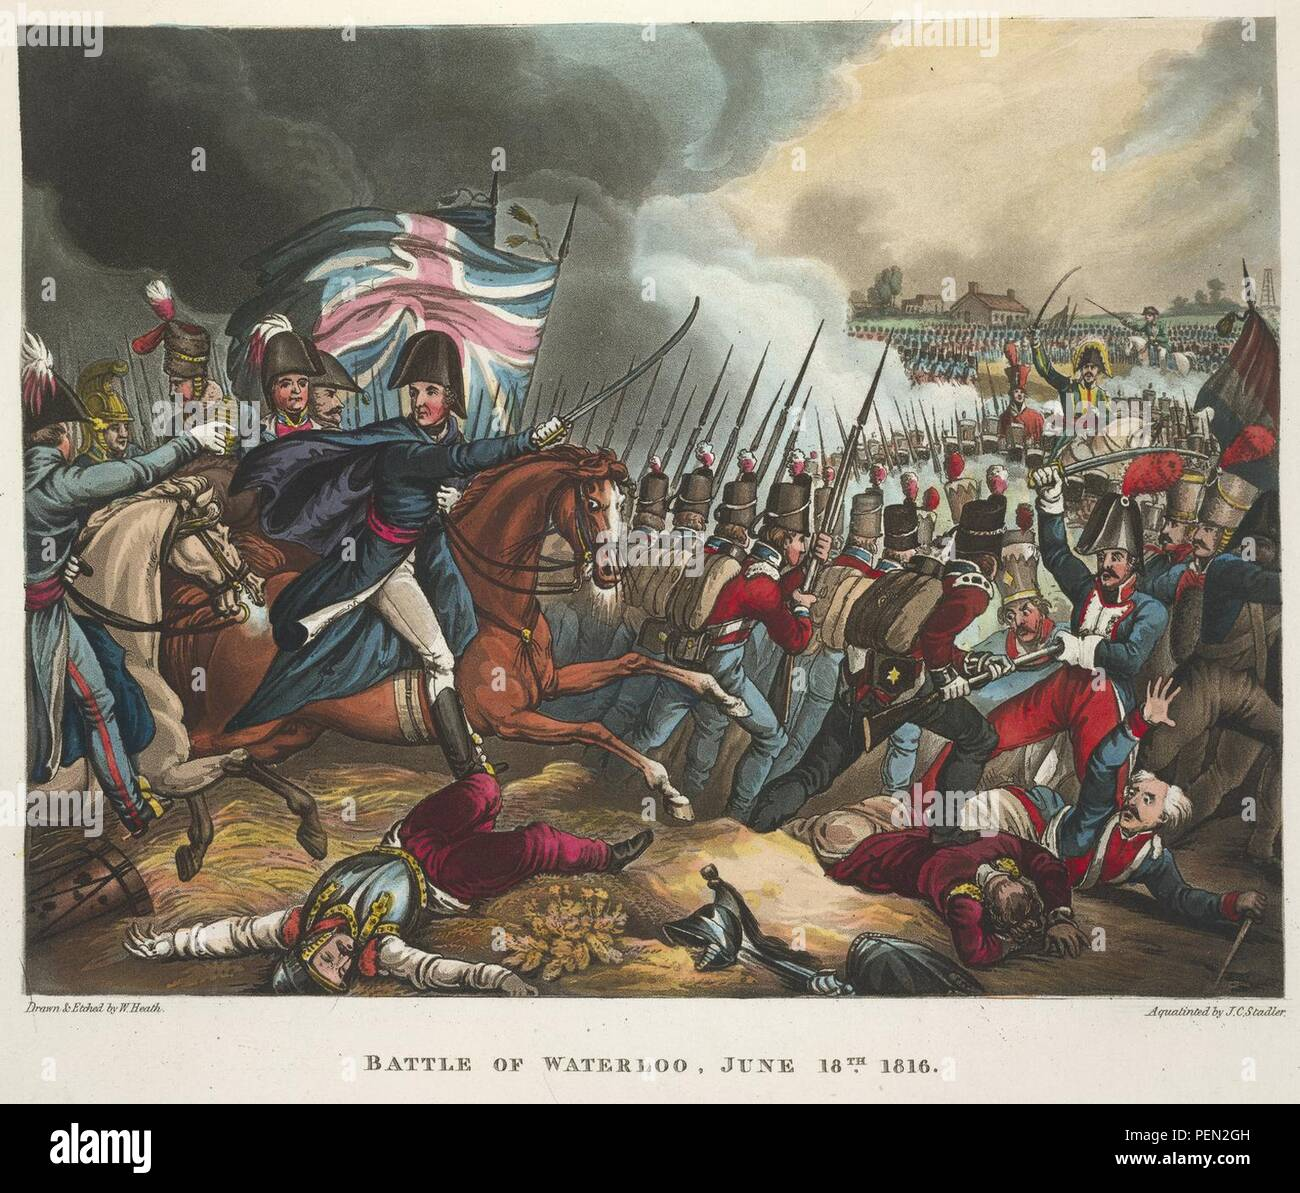 The wars of Wellington, a narrative poem. - caption  'The Battle of Waterloo, June 18th 1815. Depicting Arthur Wellesley, the Duke of Wellington. The defeat of the French forces of Napoleon Bonaparte. The last major battle of the  0393. - Stock Image